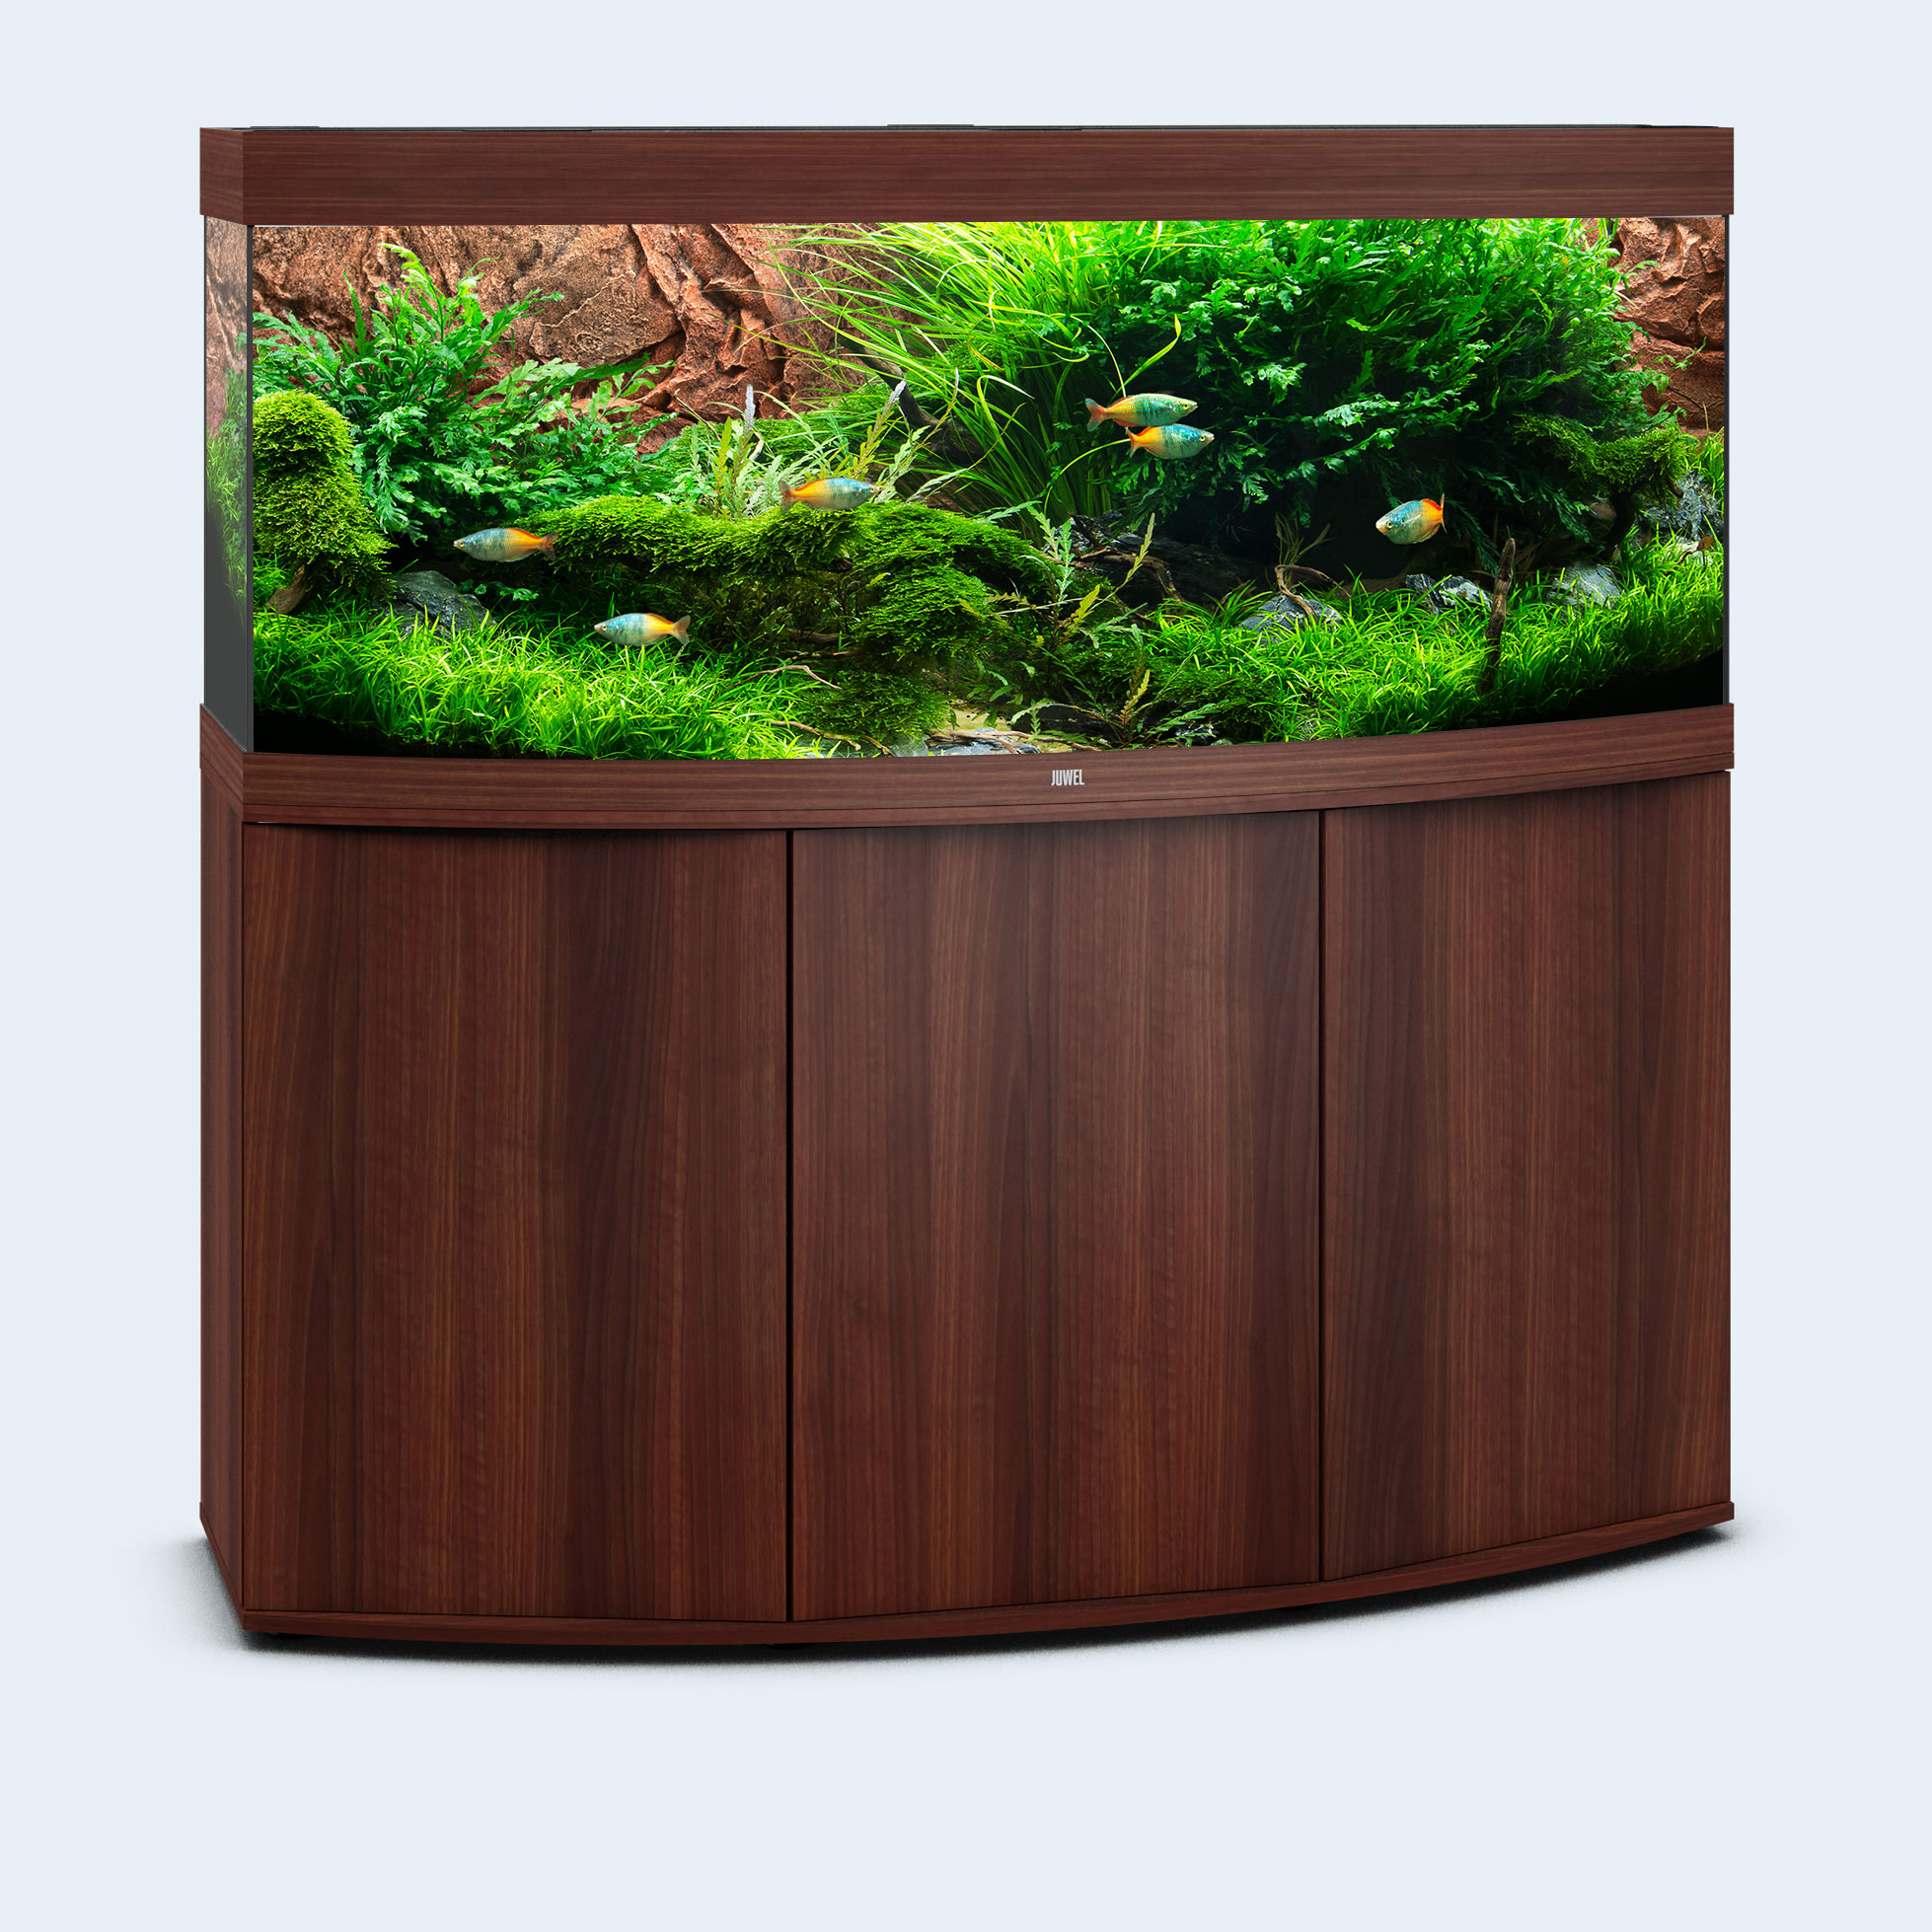 juwel aquarium vision line 450. Black Bedroom Furniture Sets. Home Design Ideas